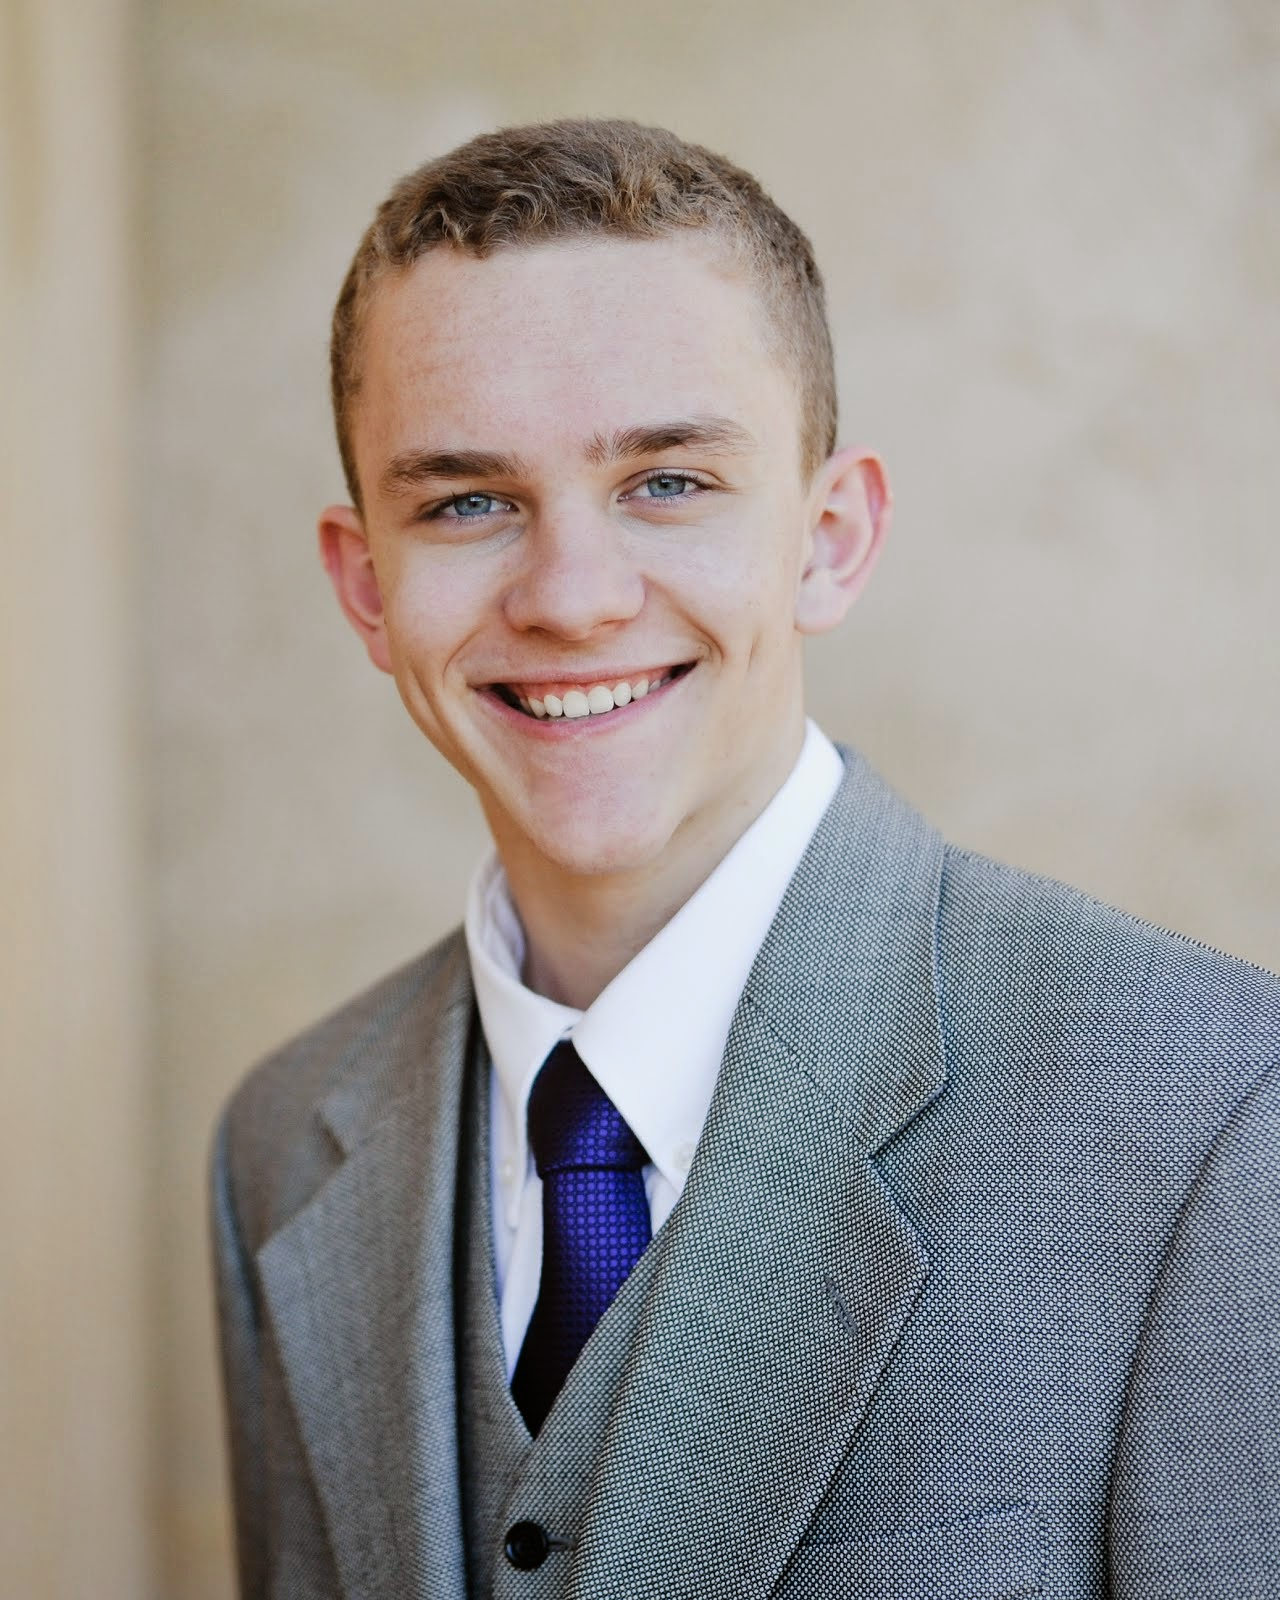 Elder Dallin Savage